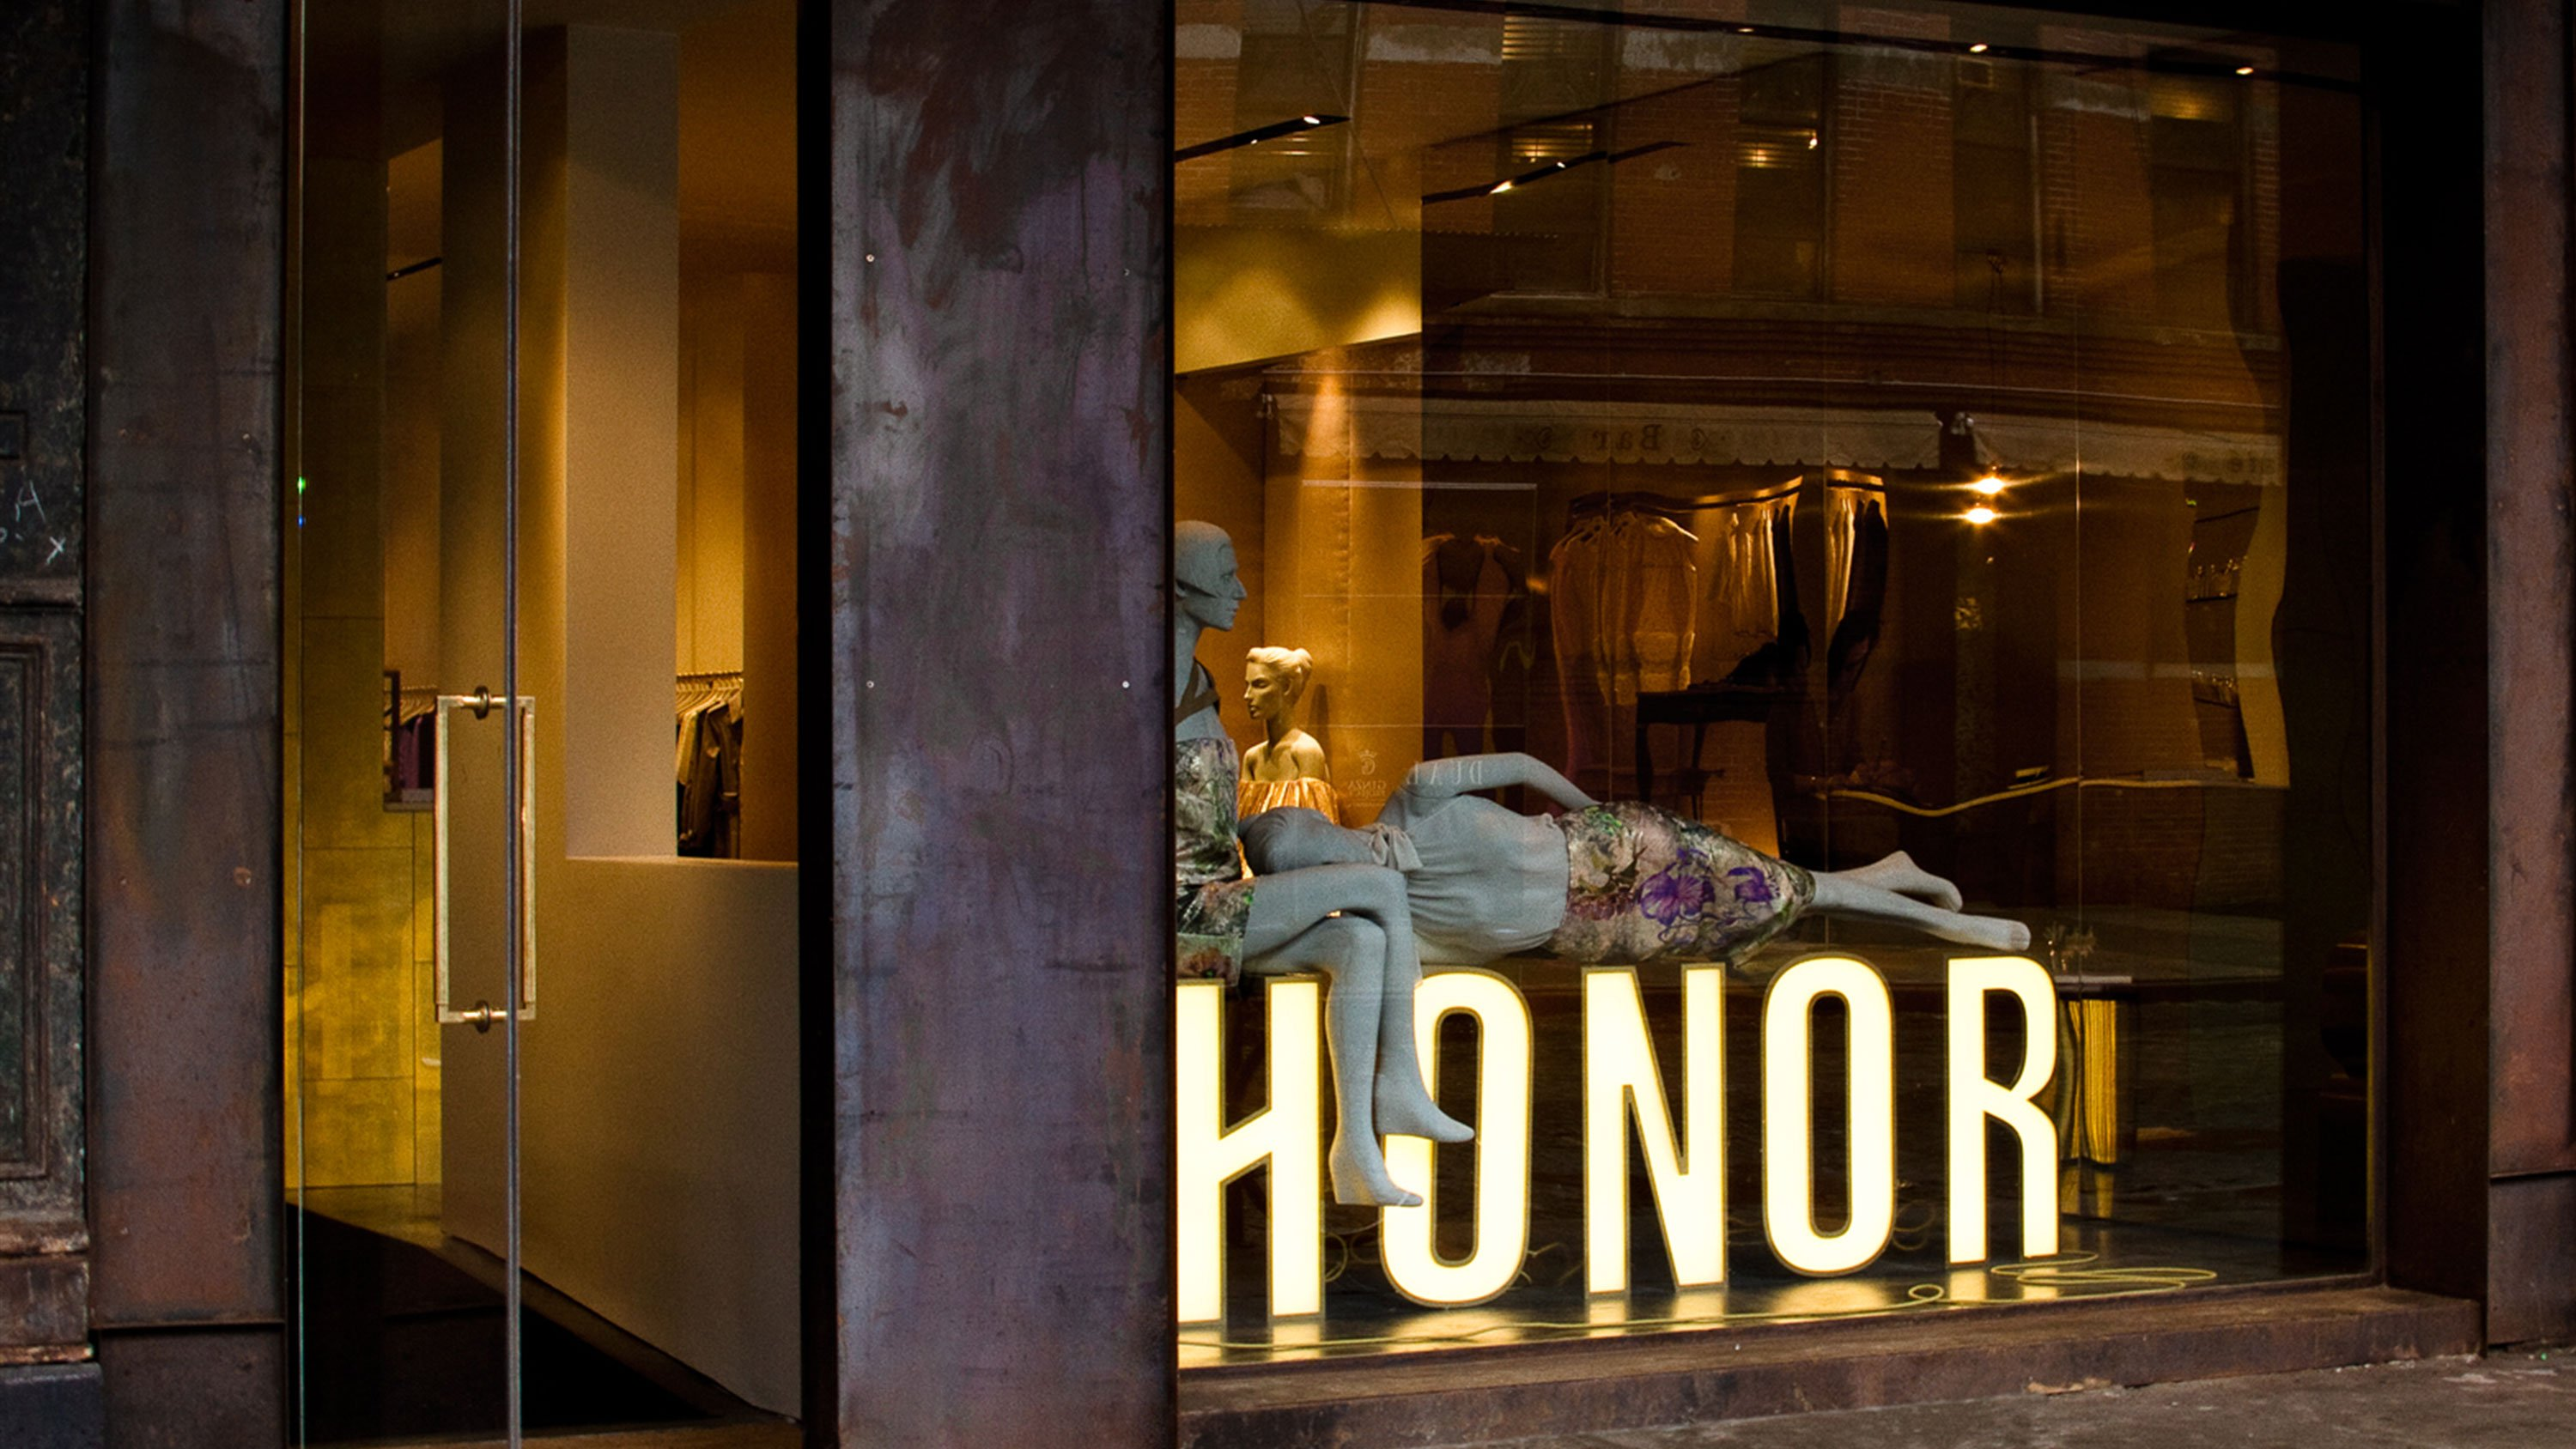 Honor storefront featuring logo designed by RoAndCo